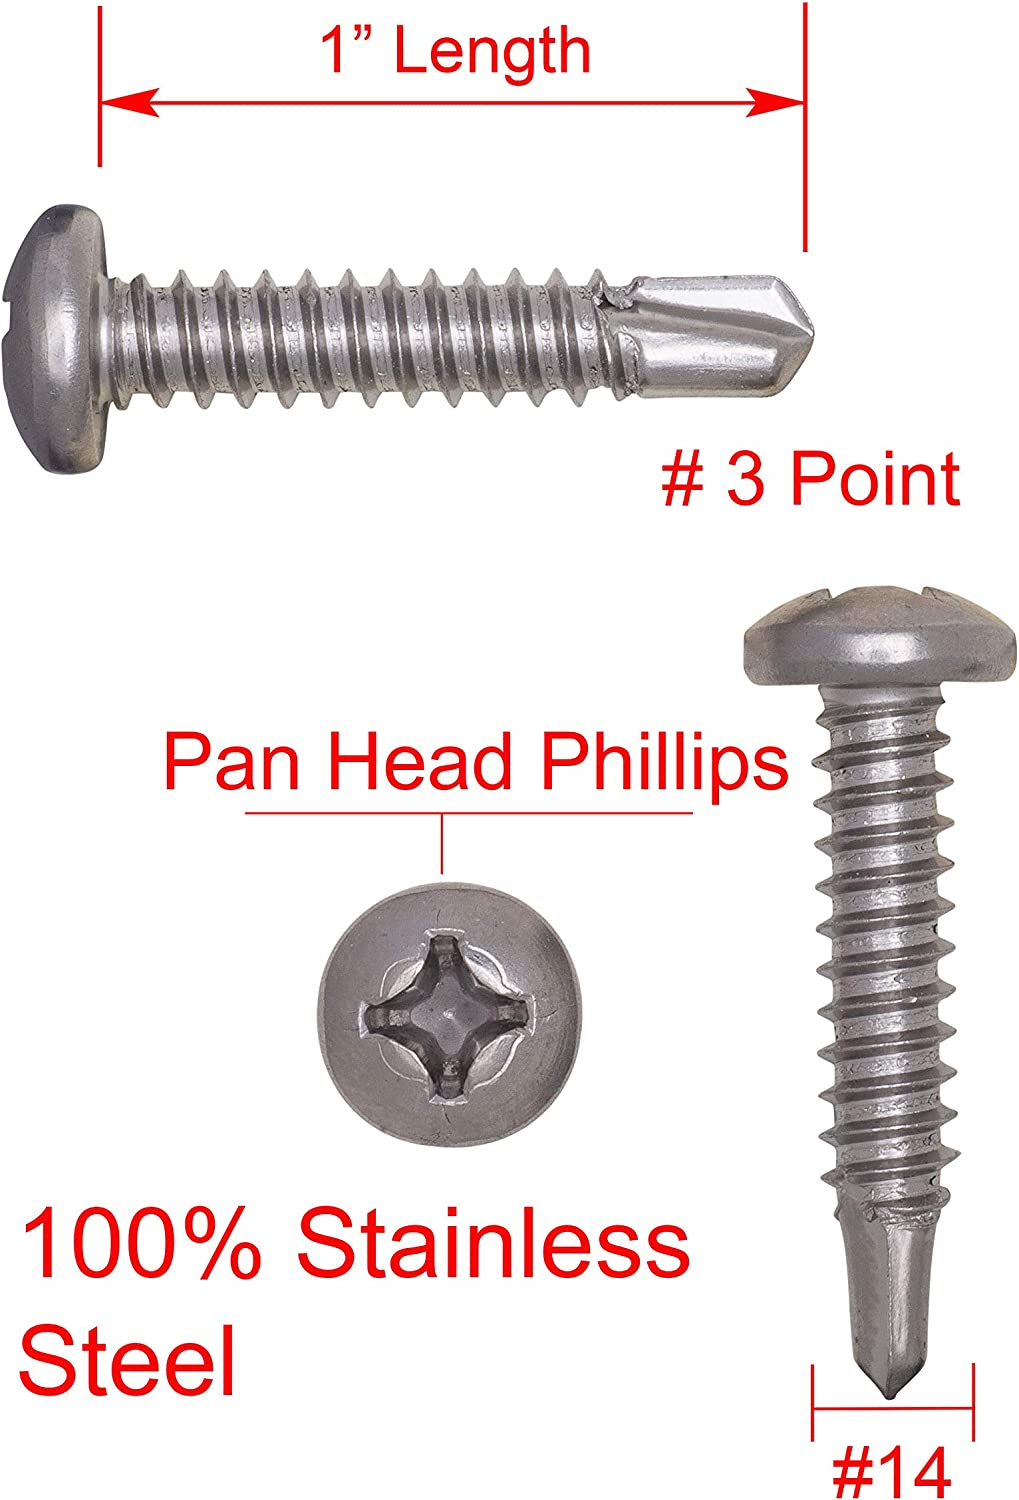 410 Stainless Steel Self Tapping Screws by Bolt Dropper #12 X 2 Stainless Pan Head Phillips Self Drilling Screw, 25pc